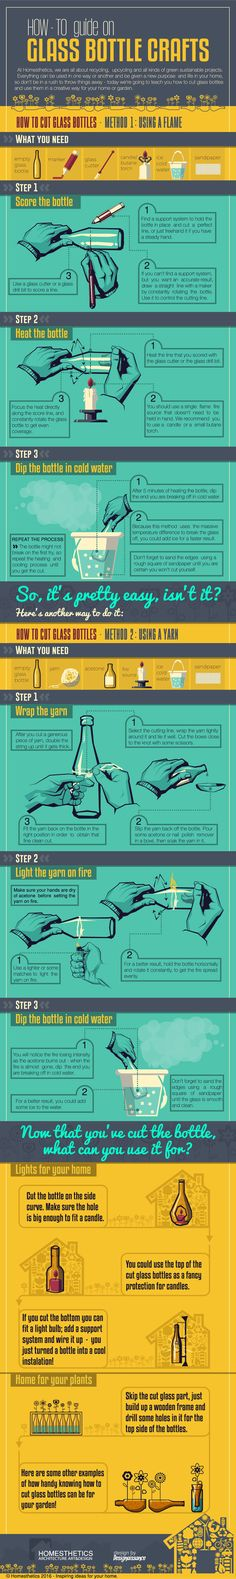 We have all had to get rid of empty glass bottles in the past. You don't have to be a creative genius to repurpose your empty bottles though. This infographic from Homesthetics covers how you can cut glass bottles and use them in a creative way in your home or garden: